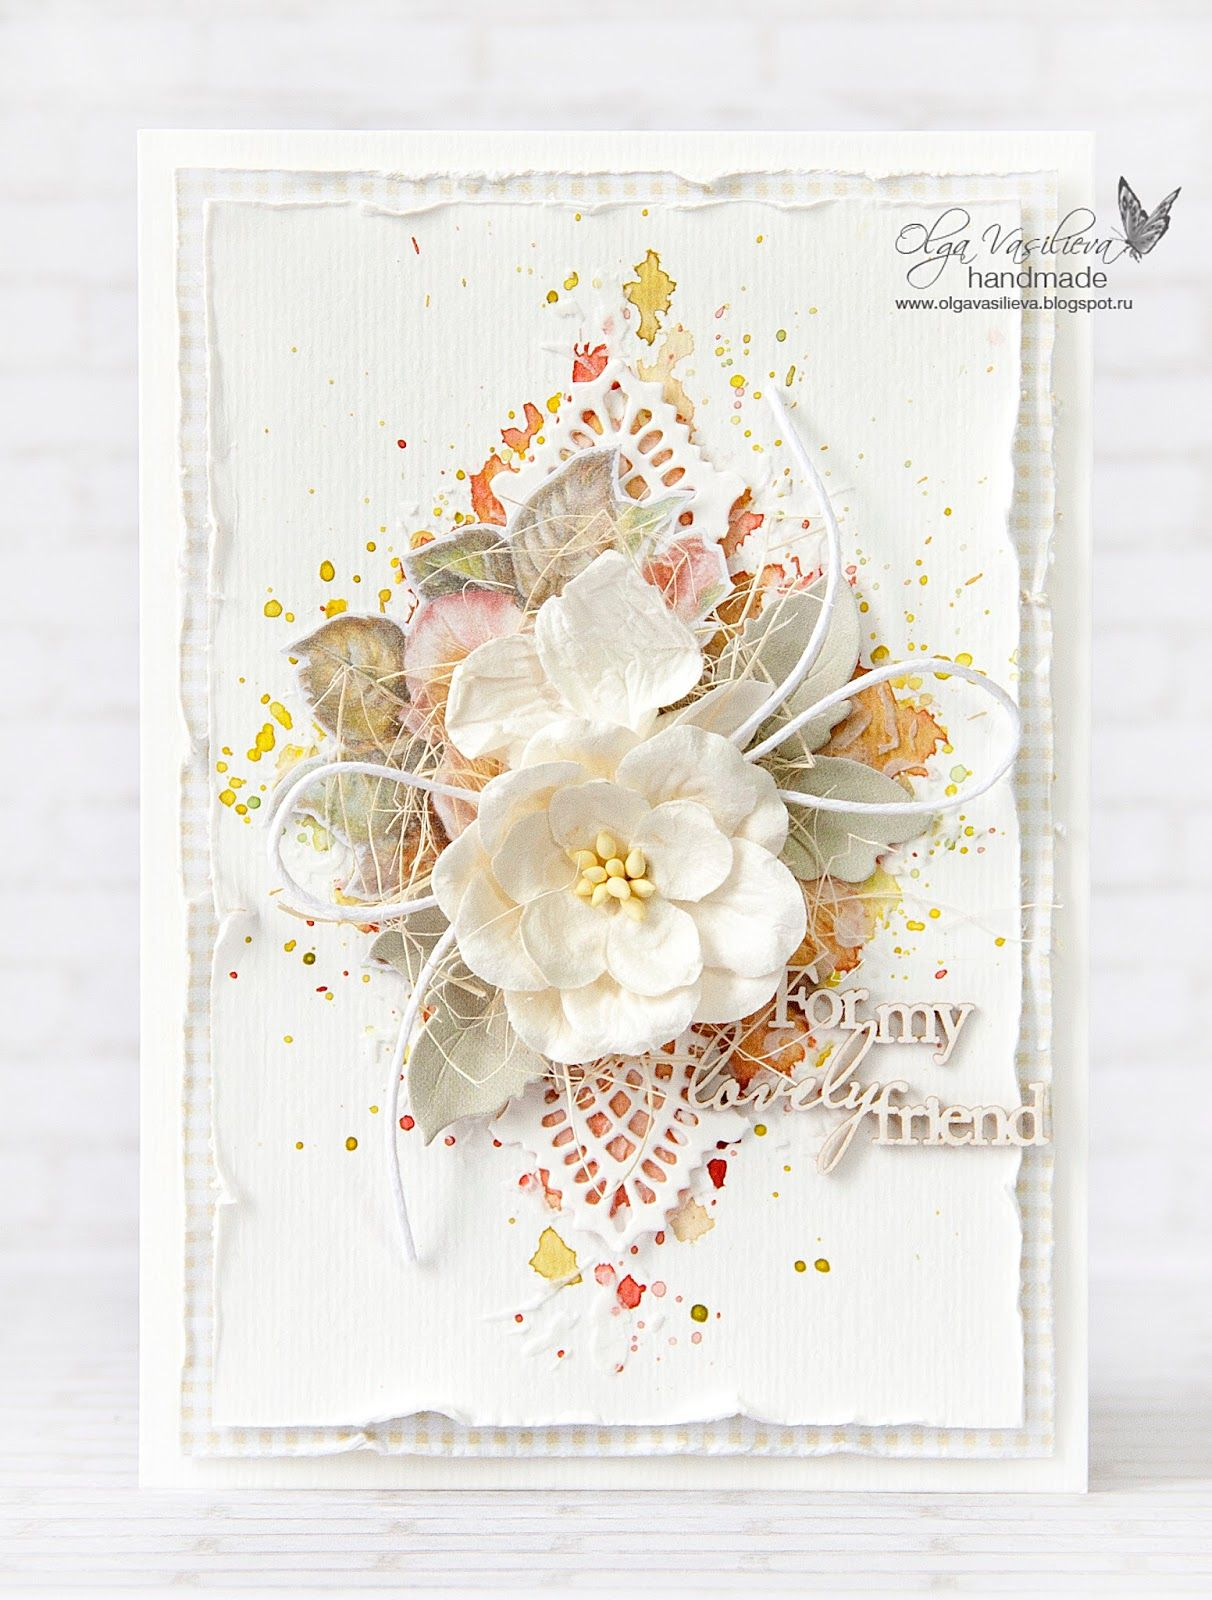 Hello All Here Is My New Card With Amazing Studio75 Products As